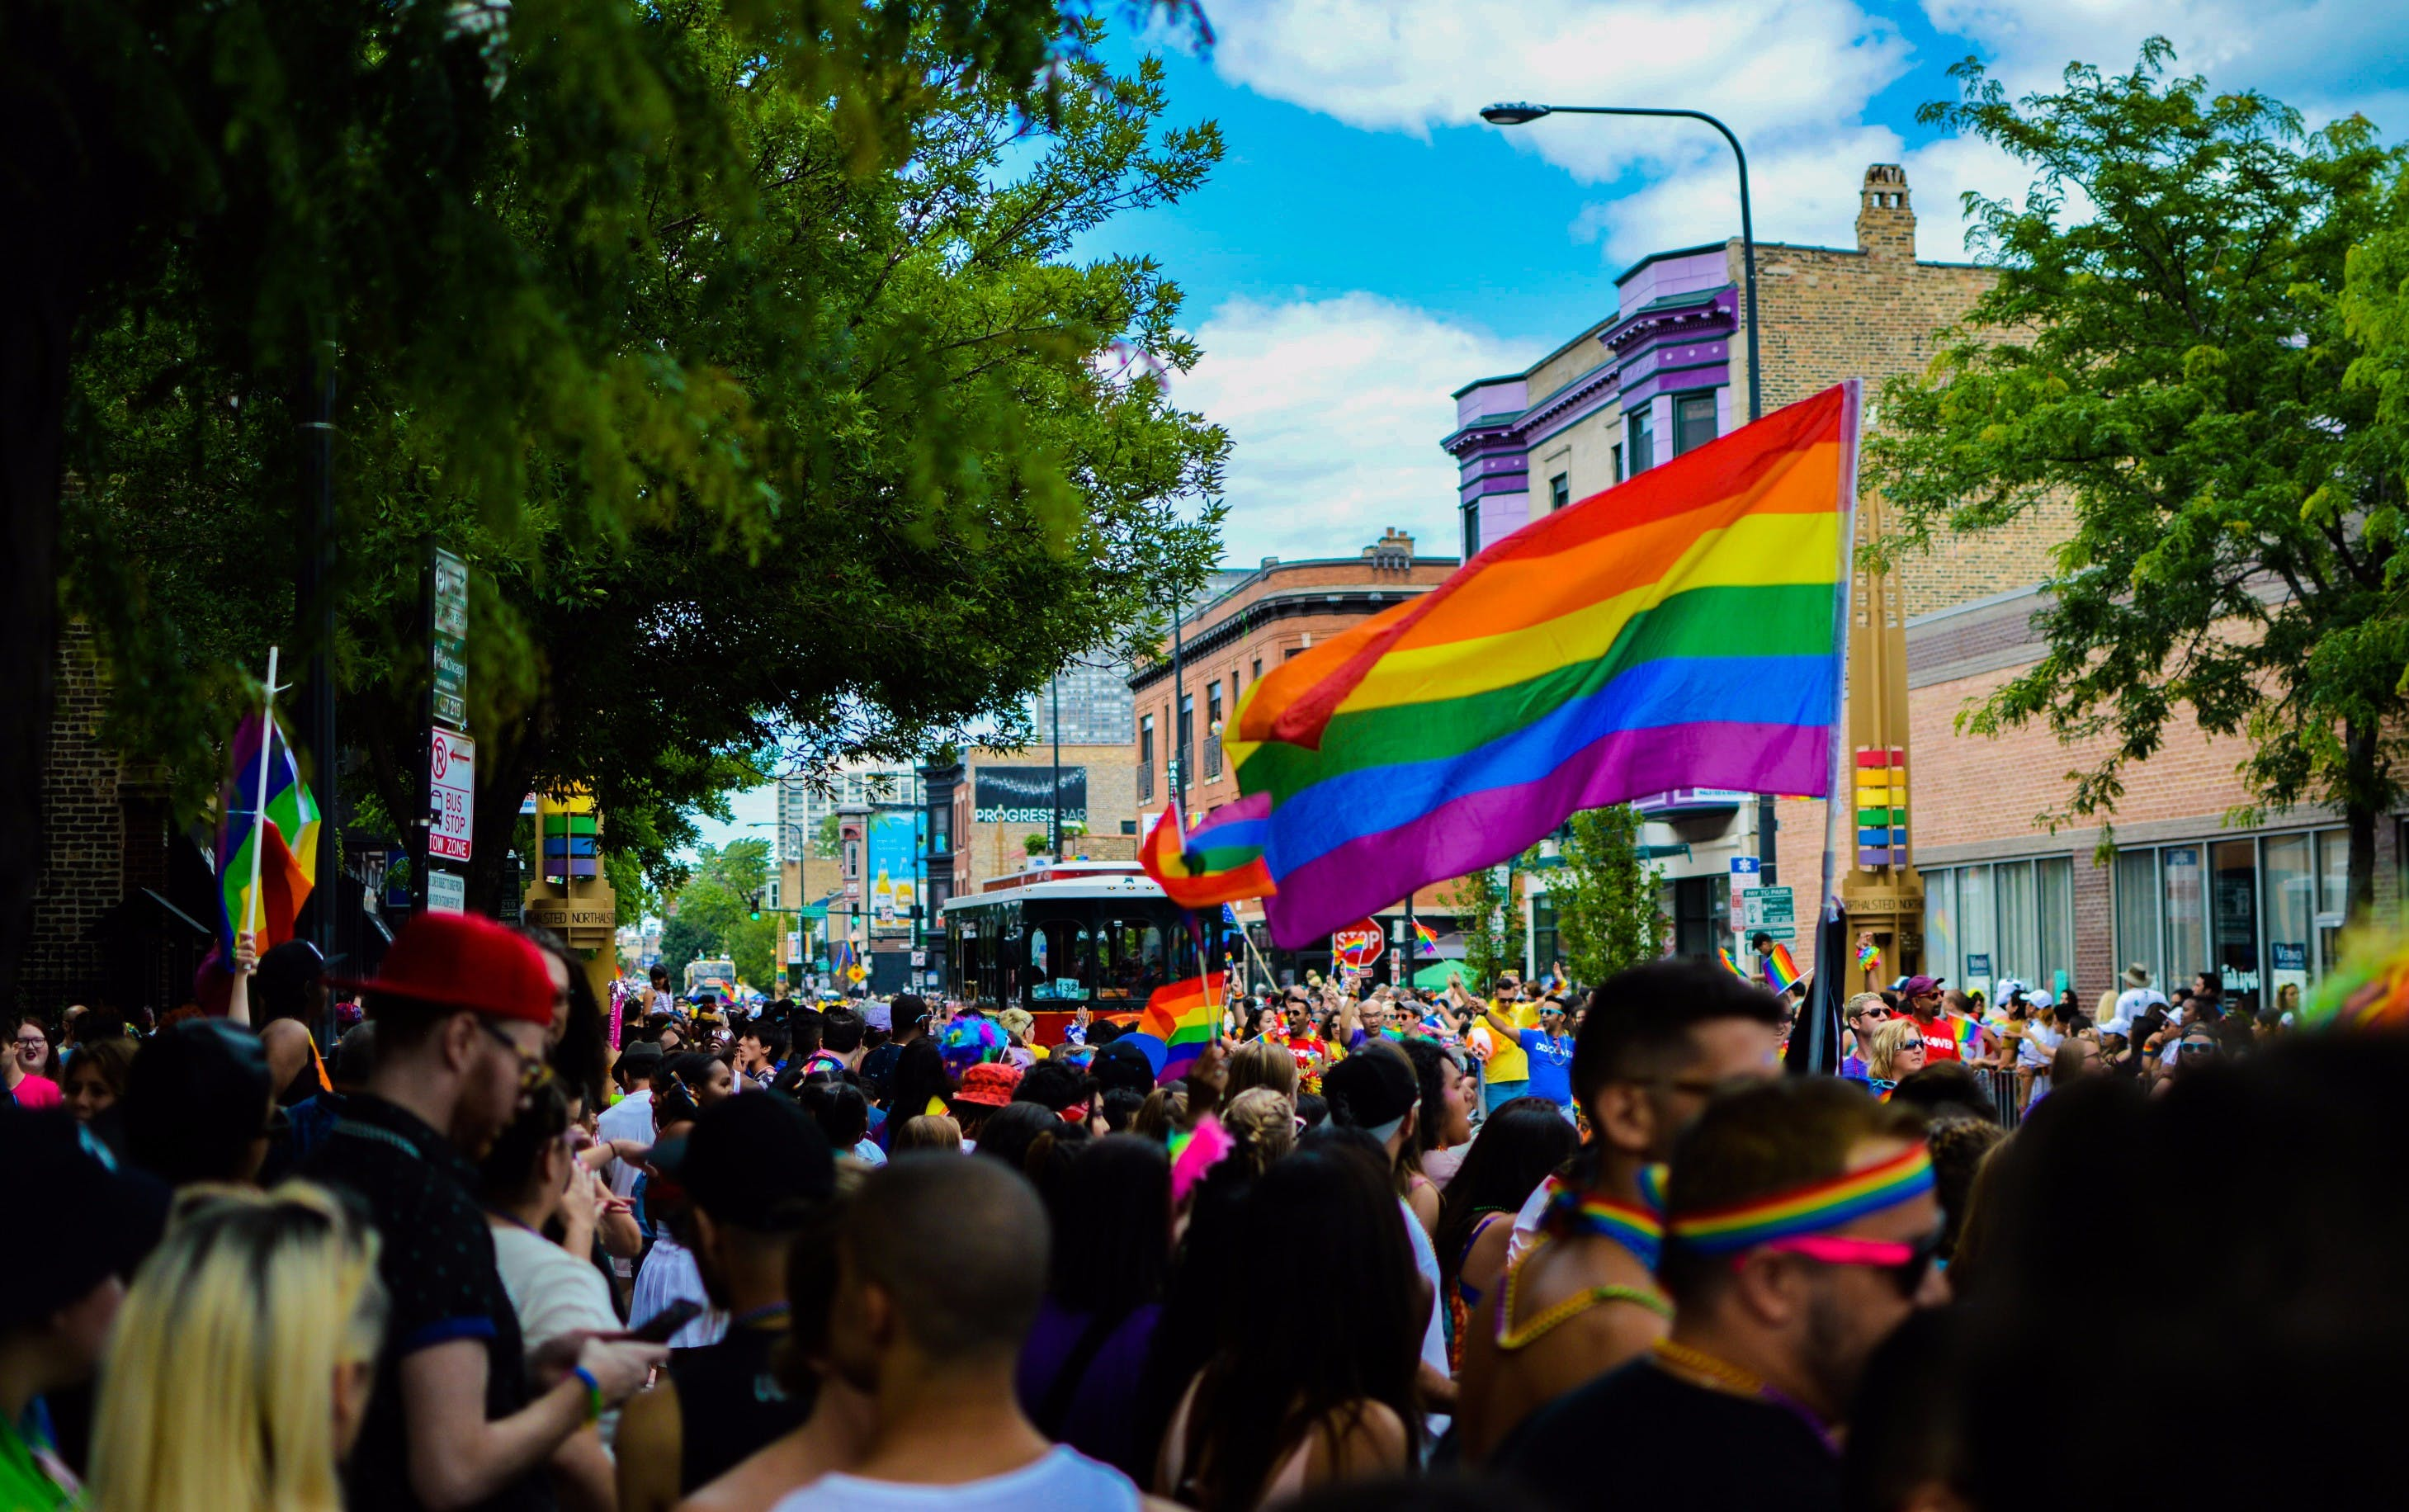 Celebrate Diversity at the Memphis Pride Parade